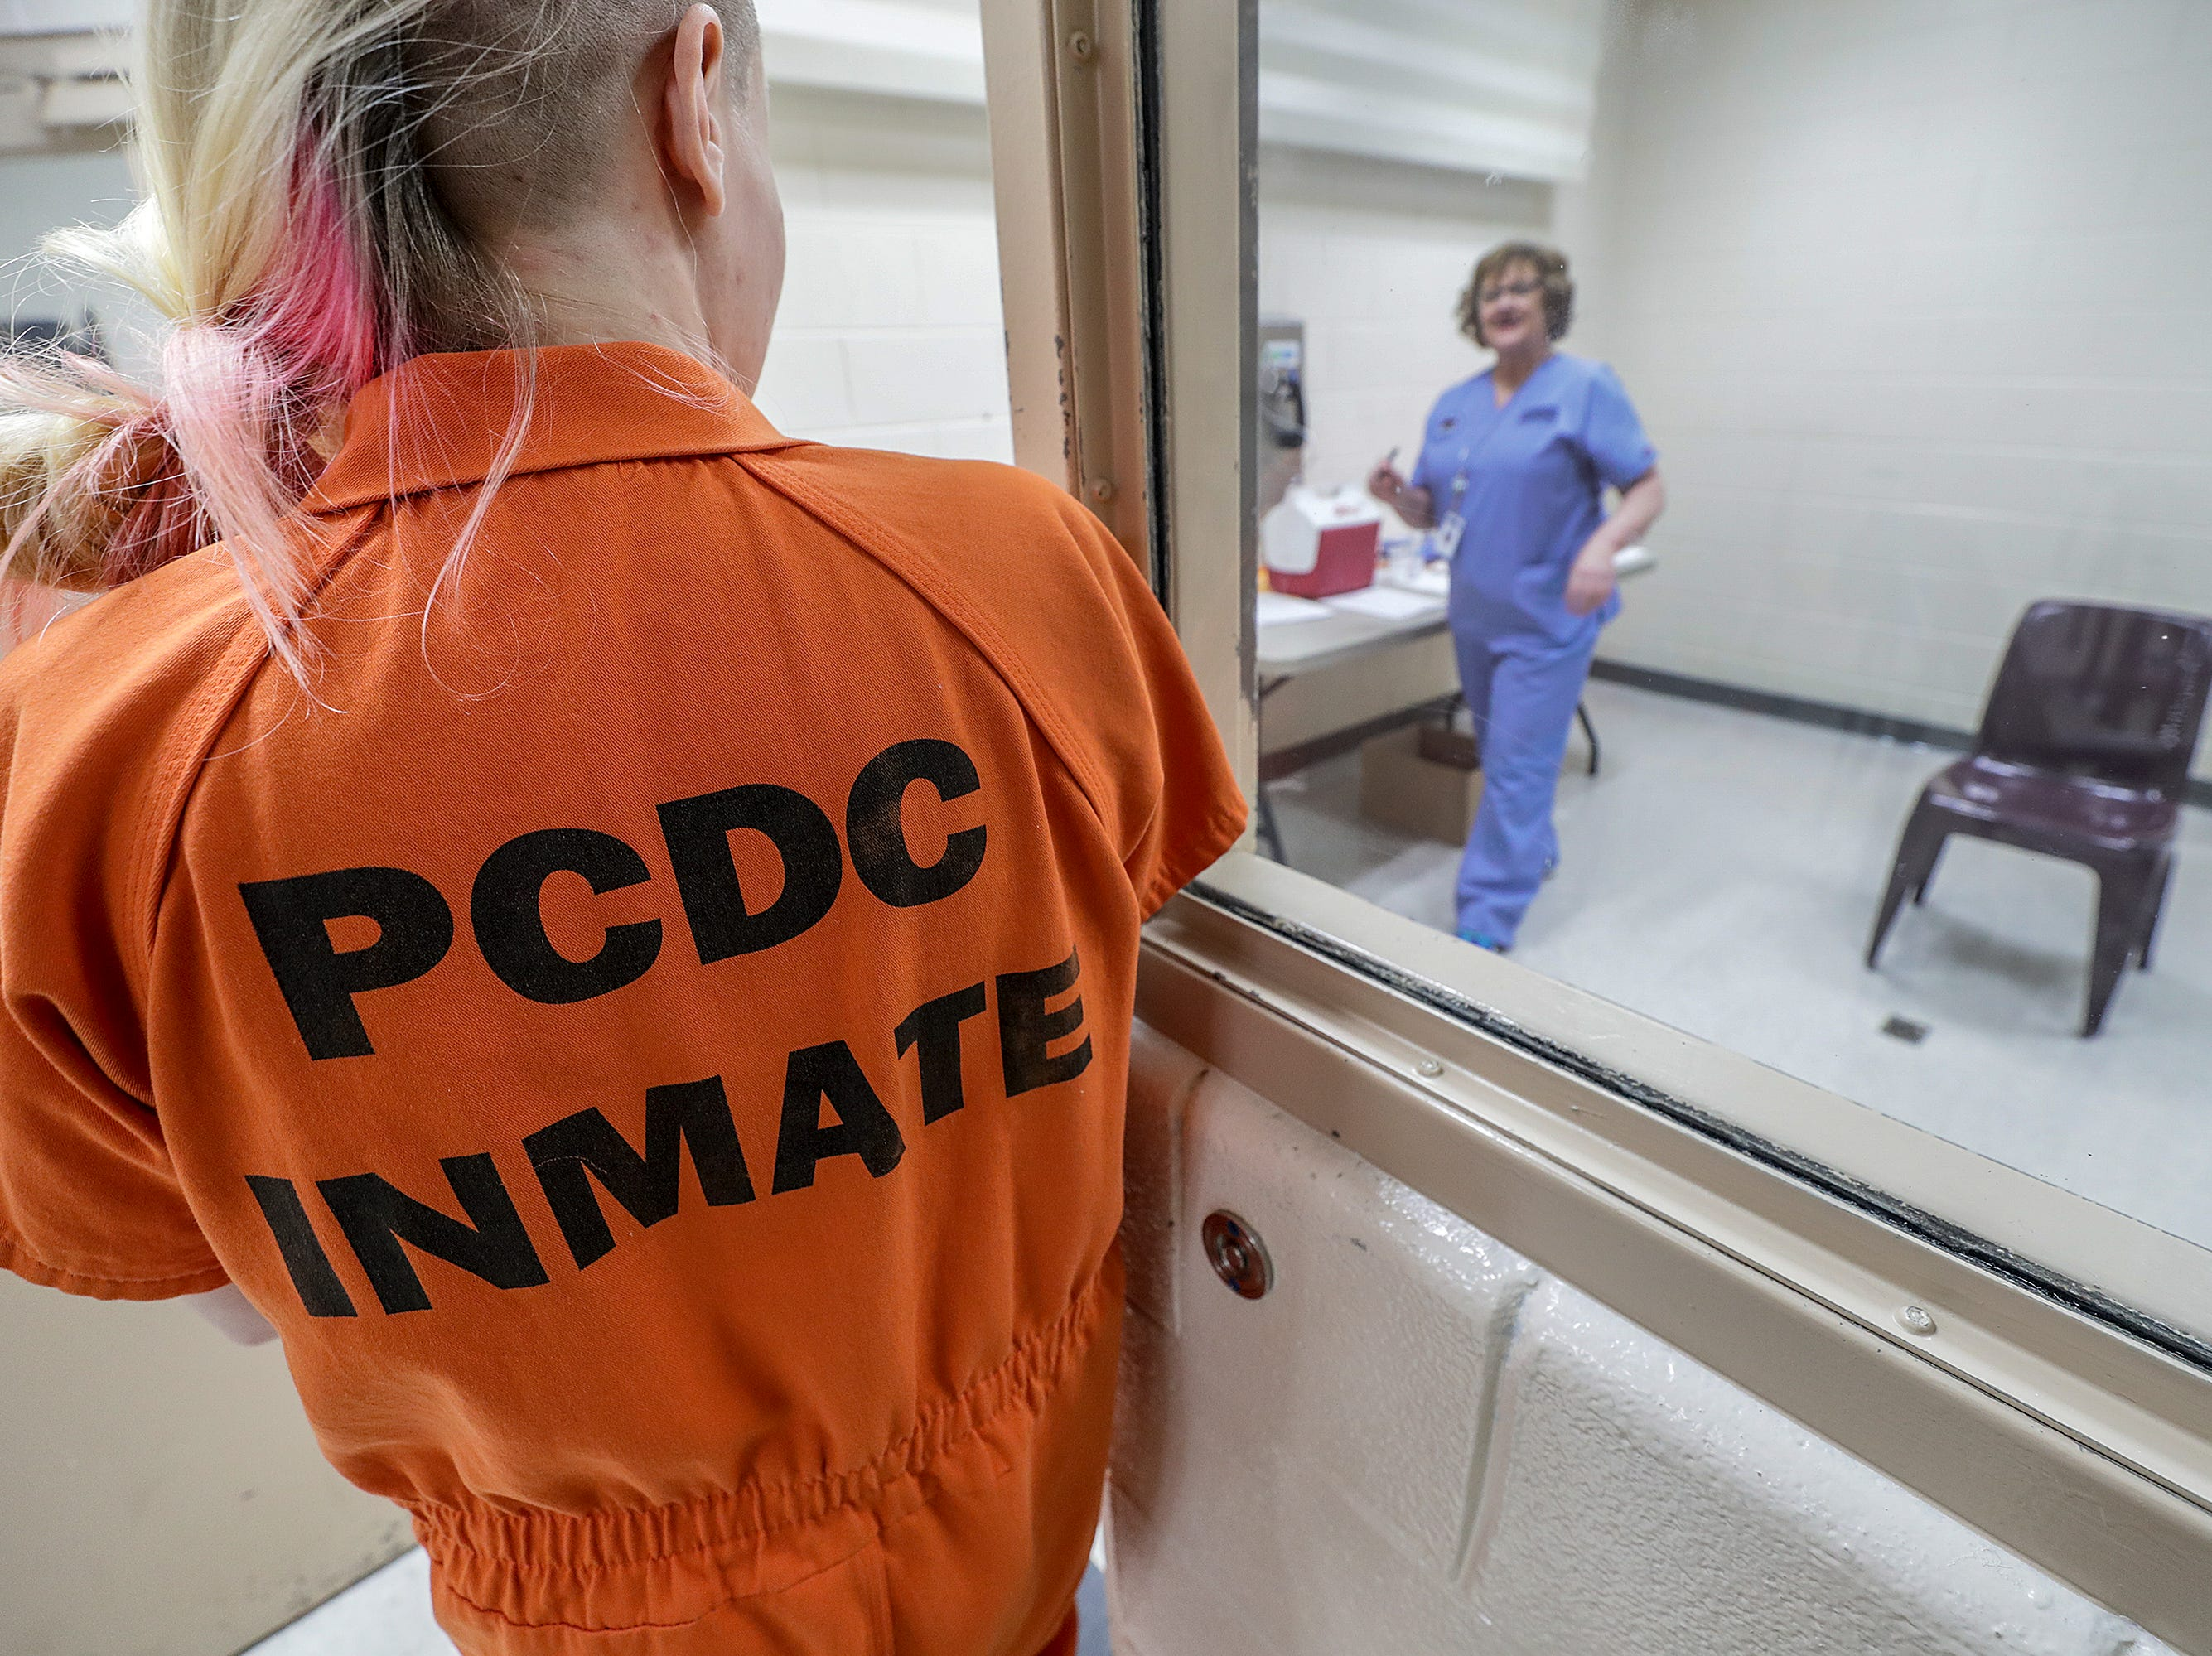 Sharon Wesley, with the Lake Cumberland District Health Department, greets an inmate at the Pulaski County Detention Center.  She vaccinated16 male and female inmates against hepatitis A one afternoon.  About 90 percent of inmates opt to get vaccinated.